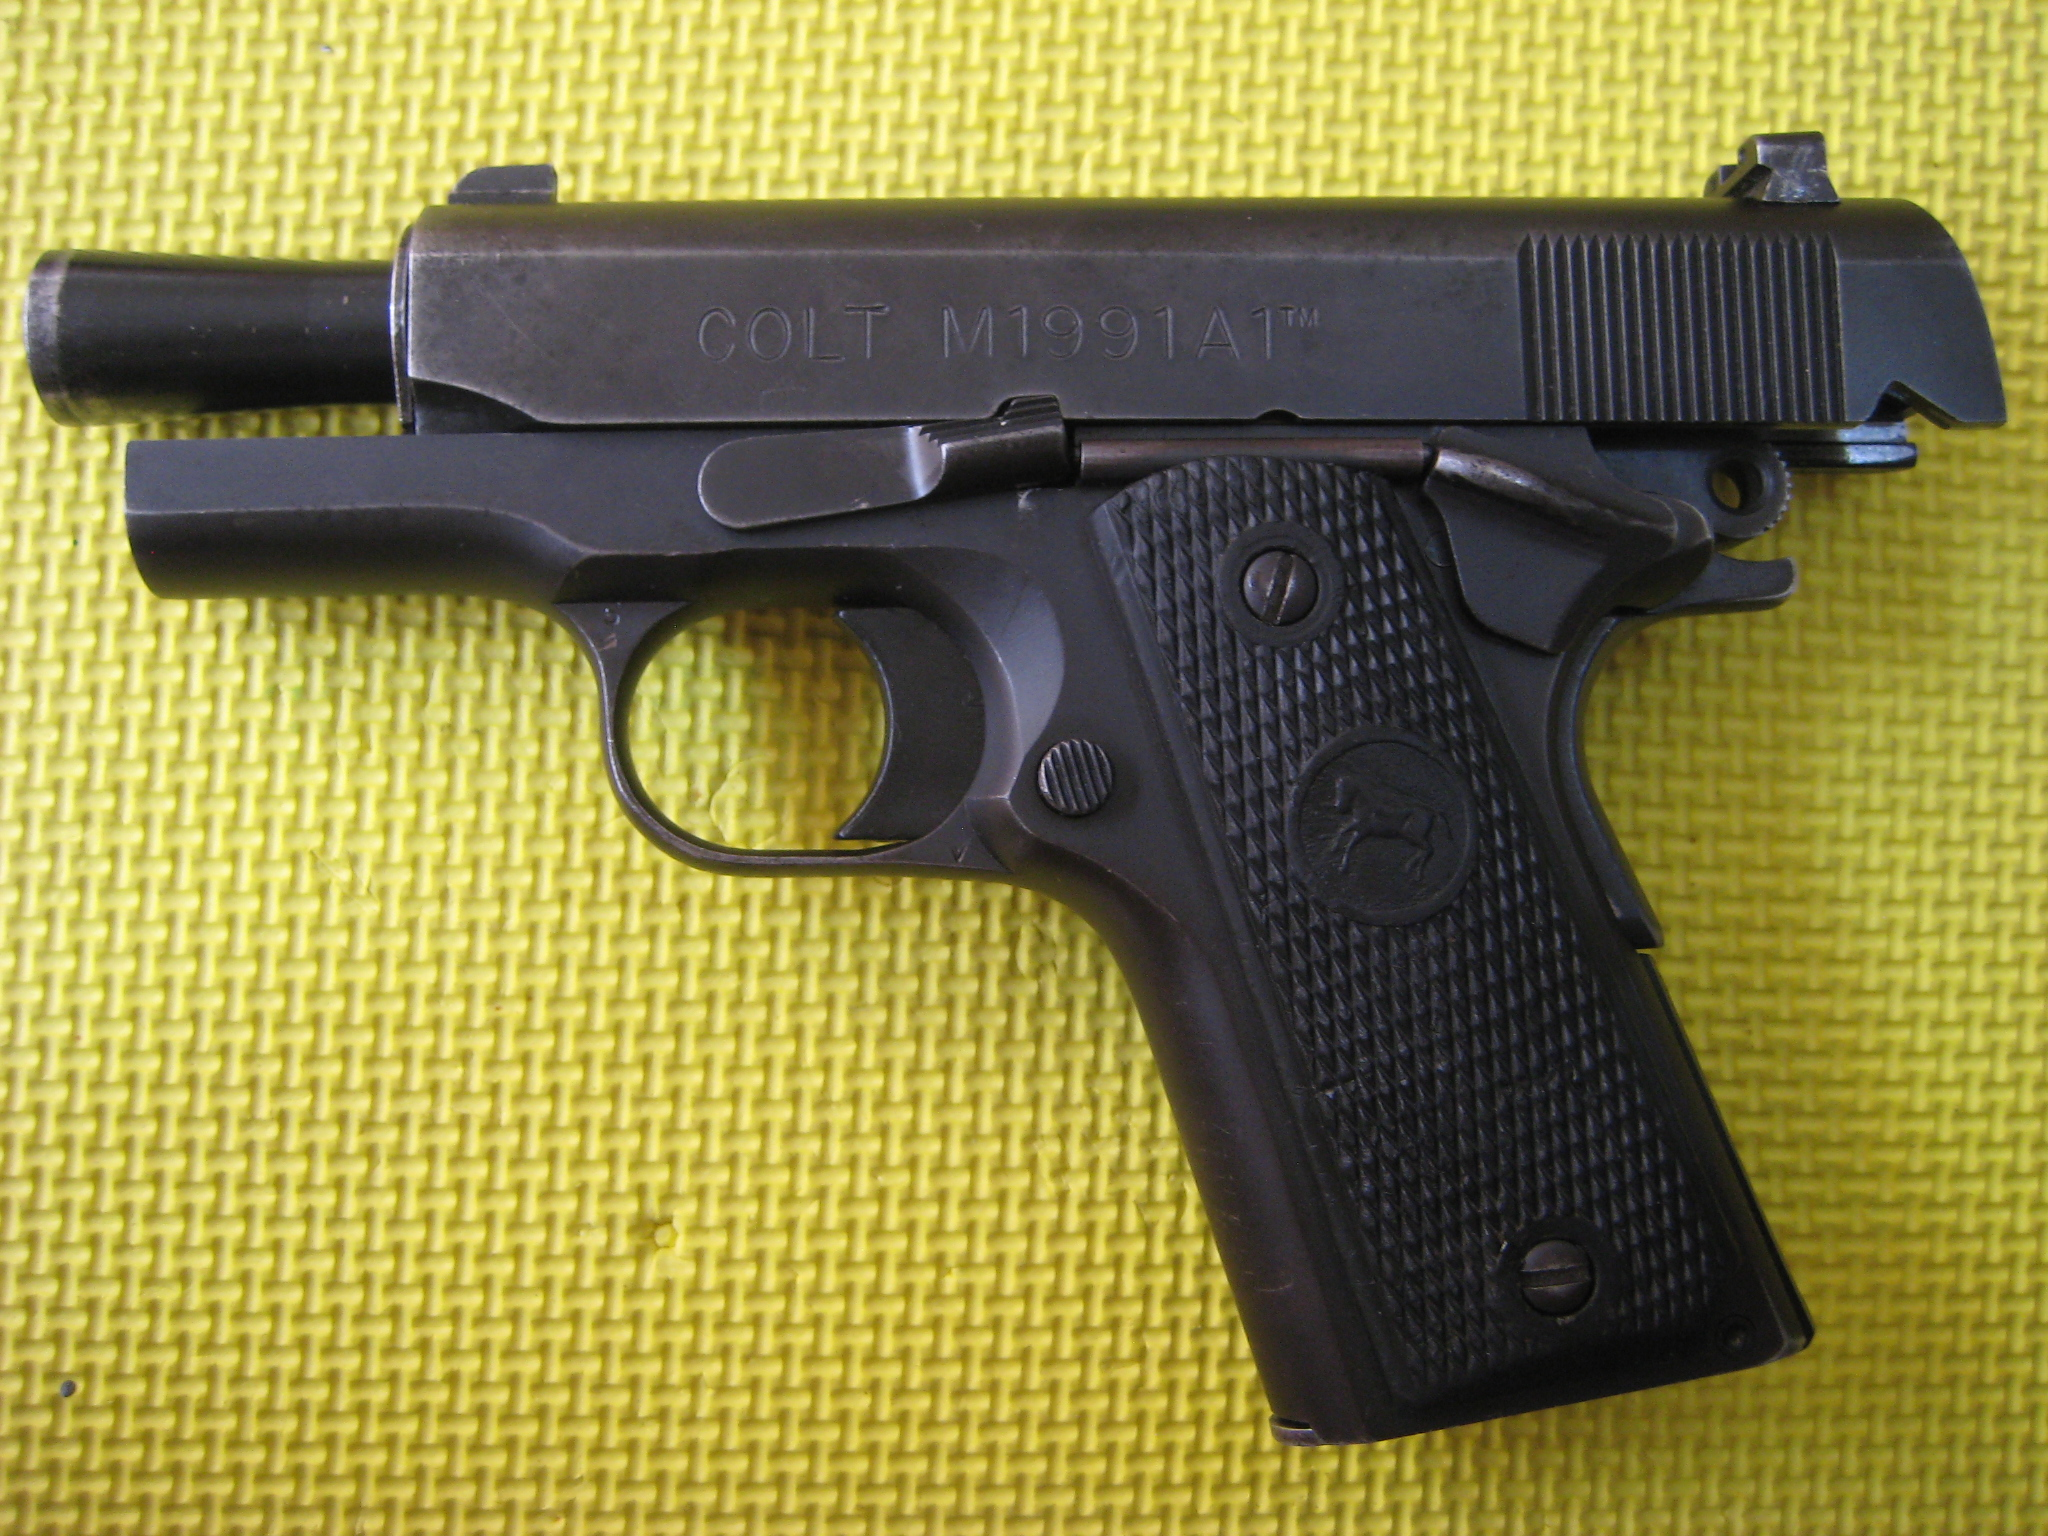 M1911 Pistol Military Wiki Fandom Powered By Wikia Af As Well Sig P226 Exploded Diagram Further 1911 Parts A Colt M1991a1 Compact Orm With Slide Locked Back To Expose Bull Barrel